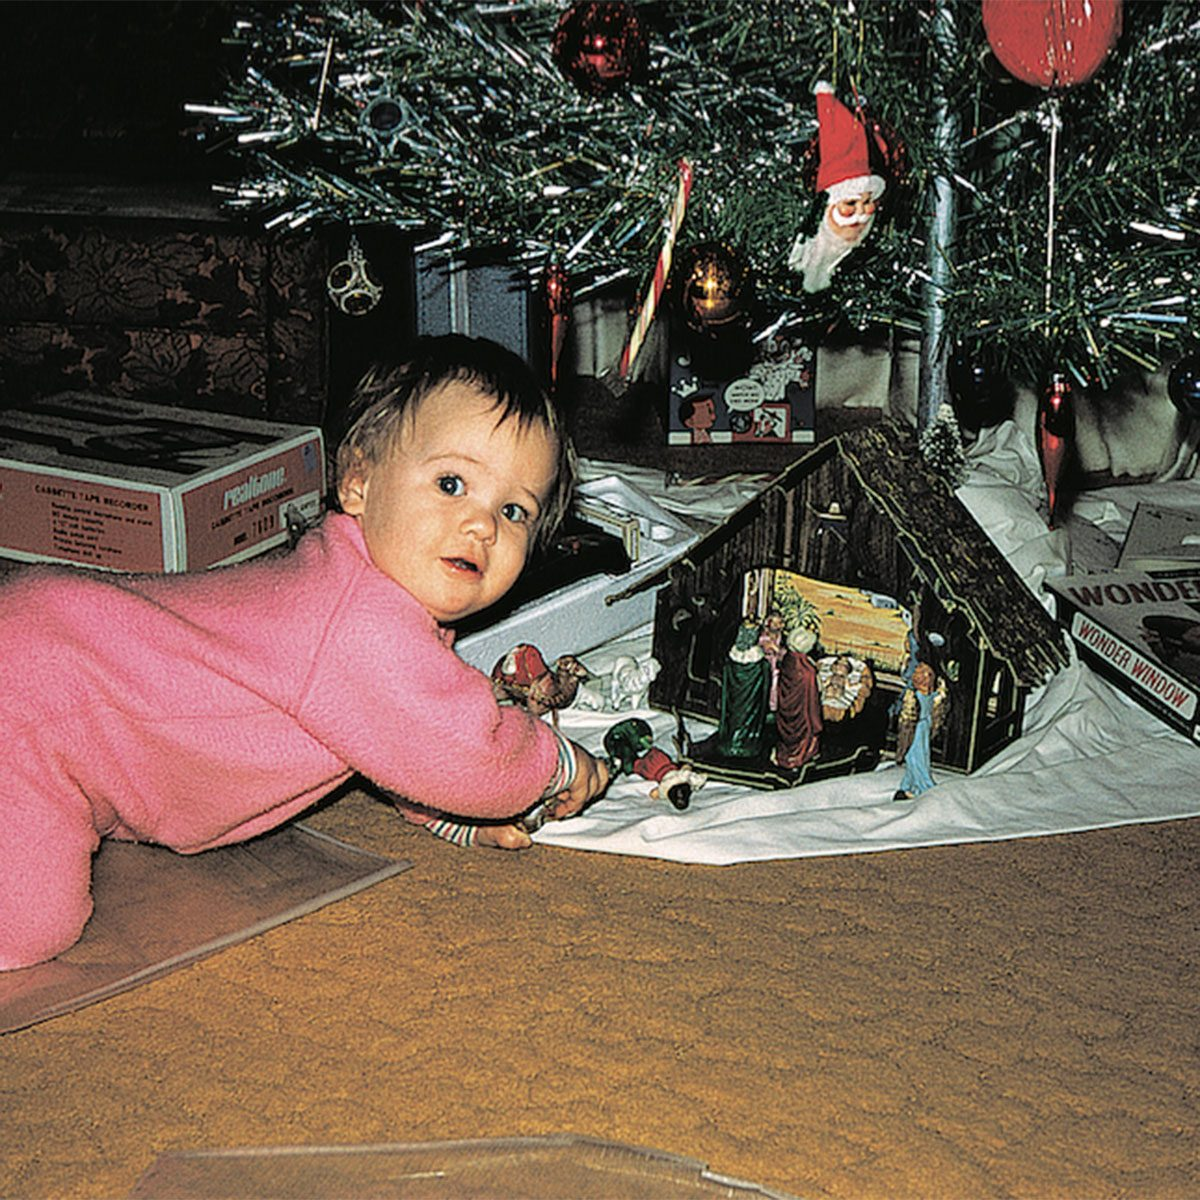 Baby calling below the Christmas tree